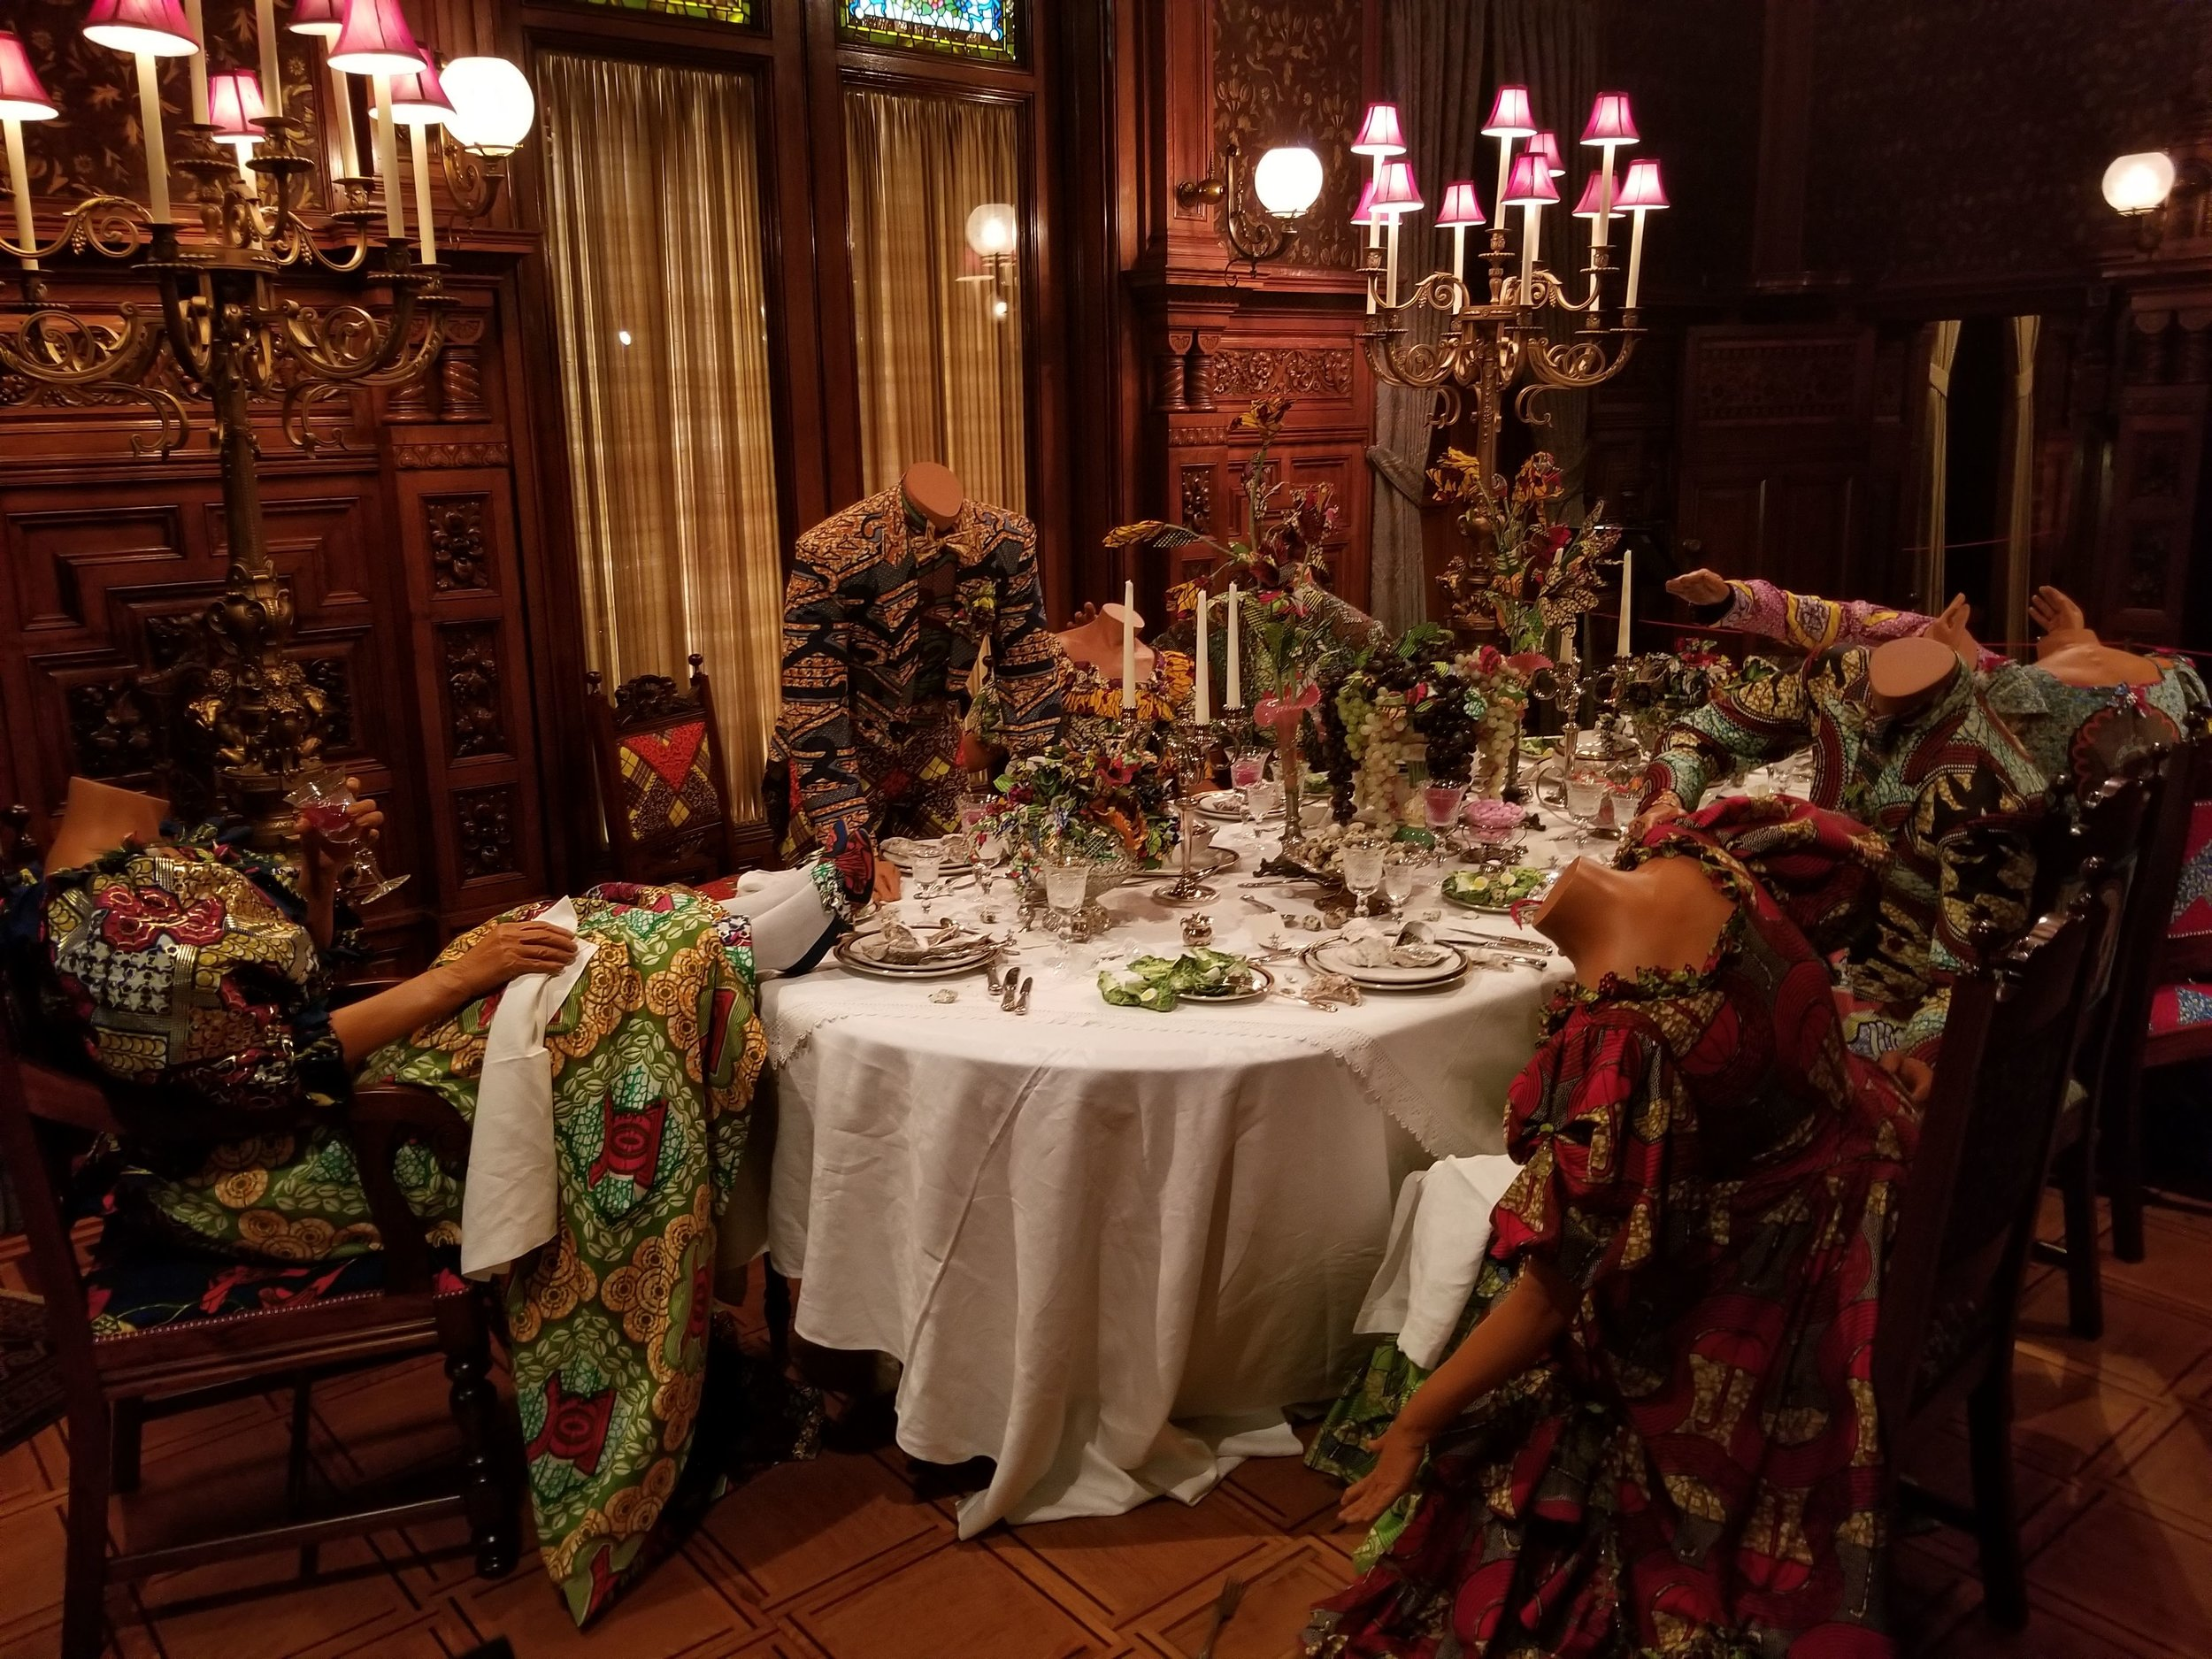 Party Time: Reimagine America  (2009) installed in the Driehaus Museum. (My photo.)